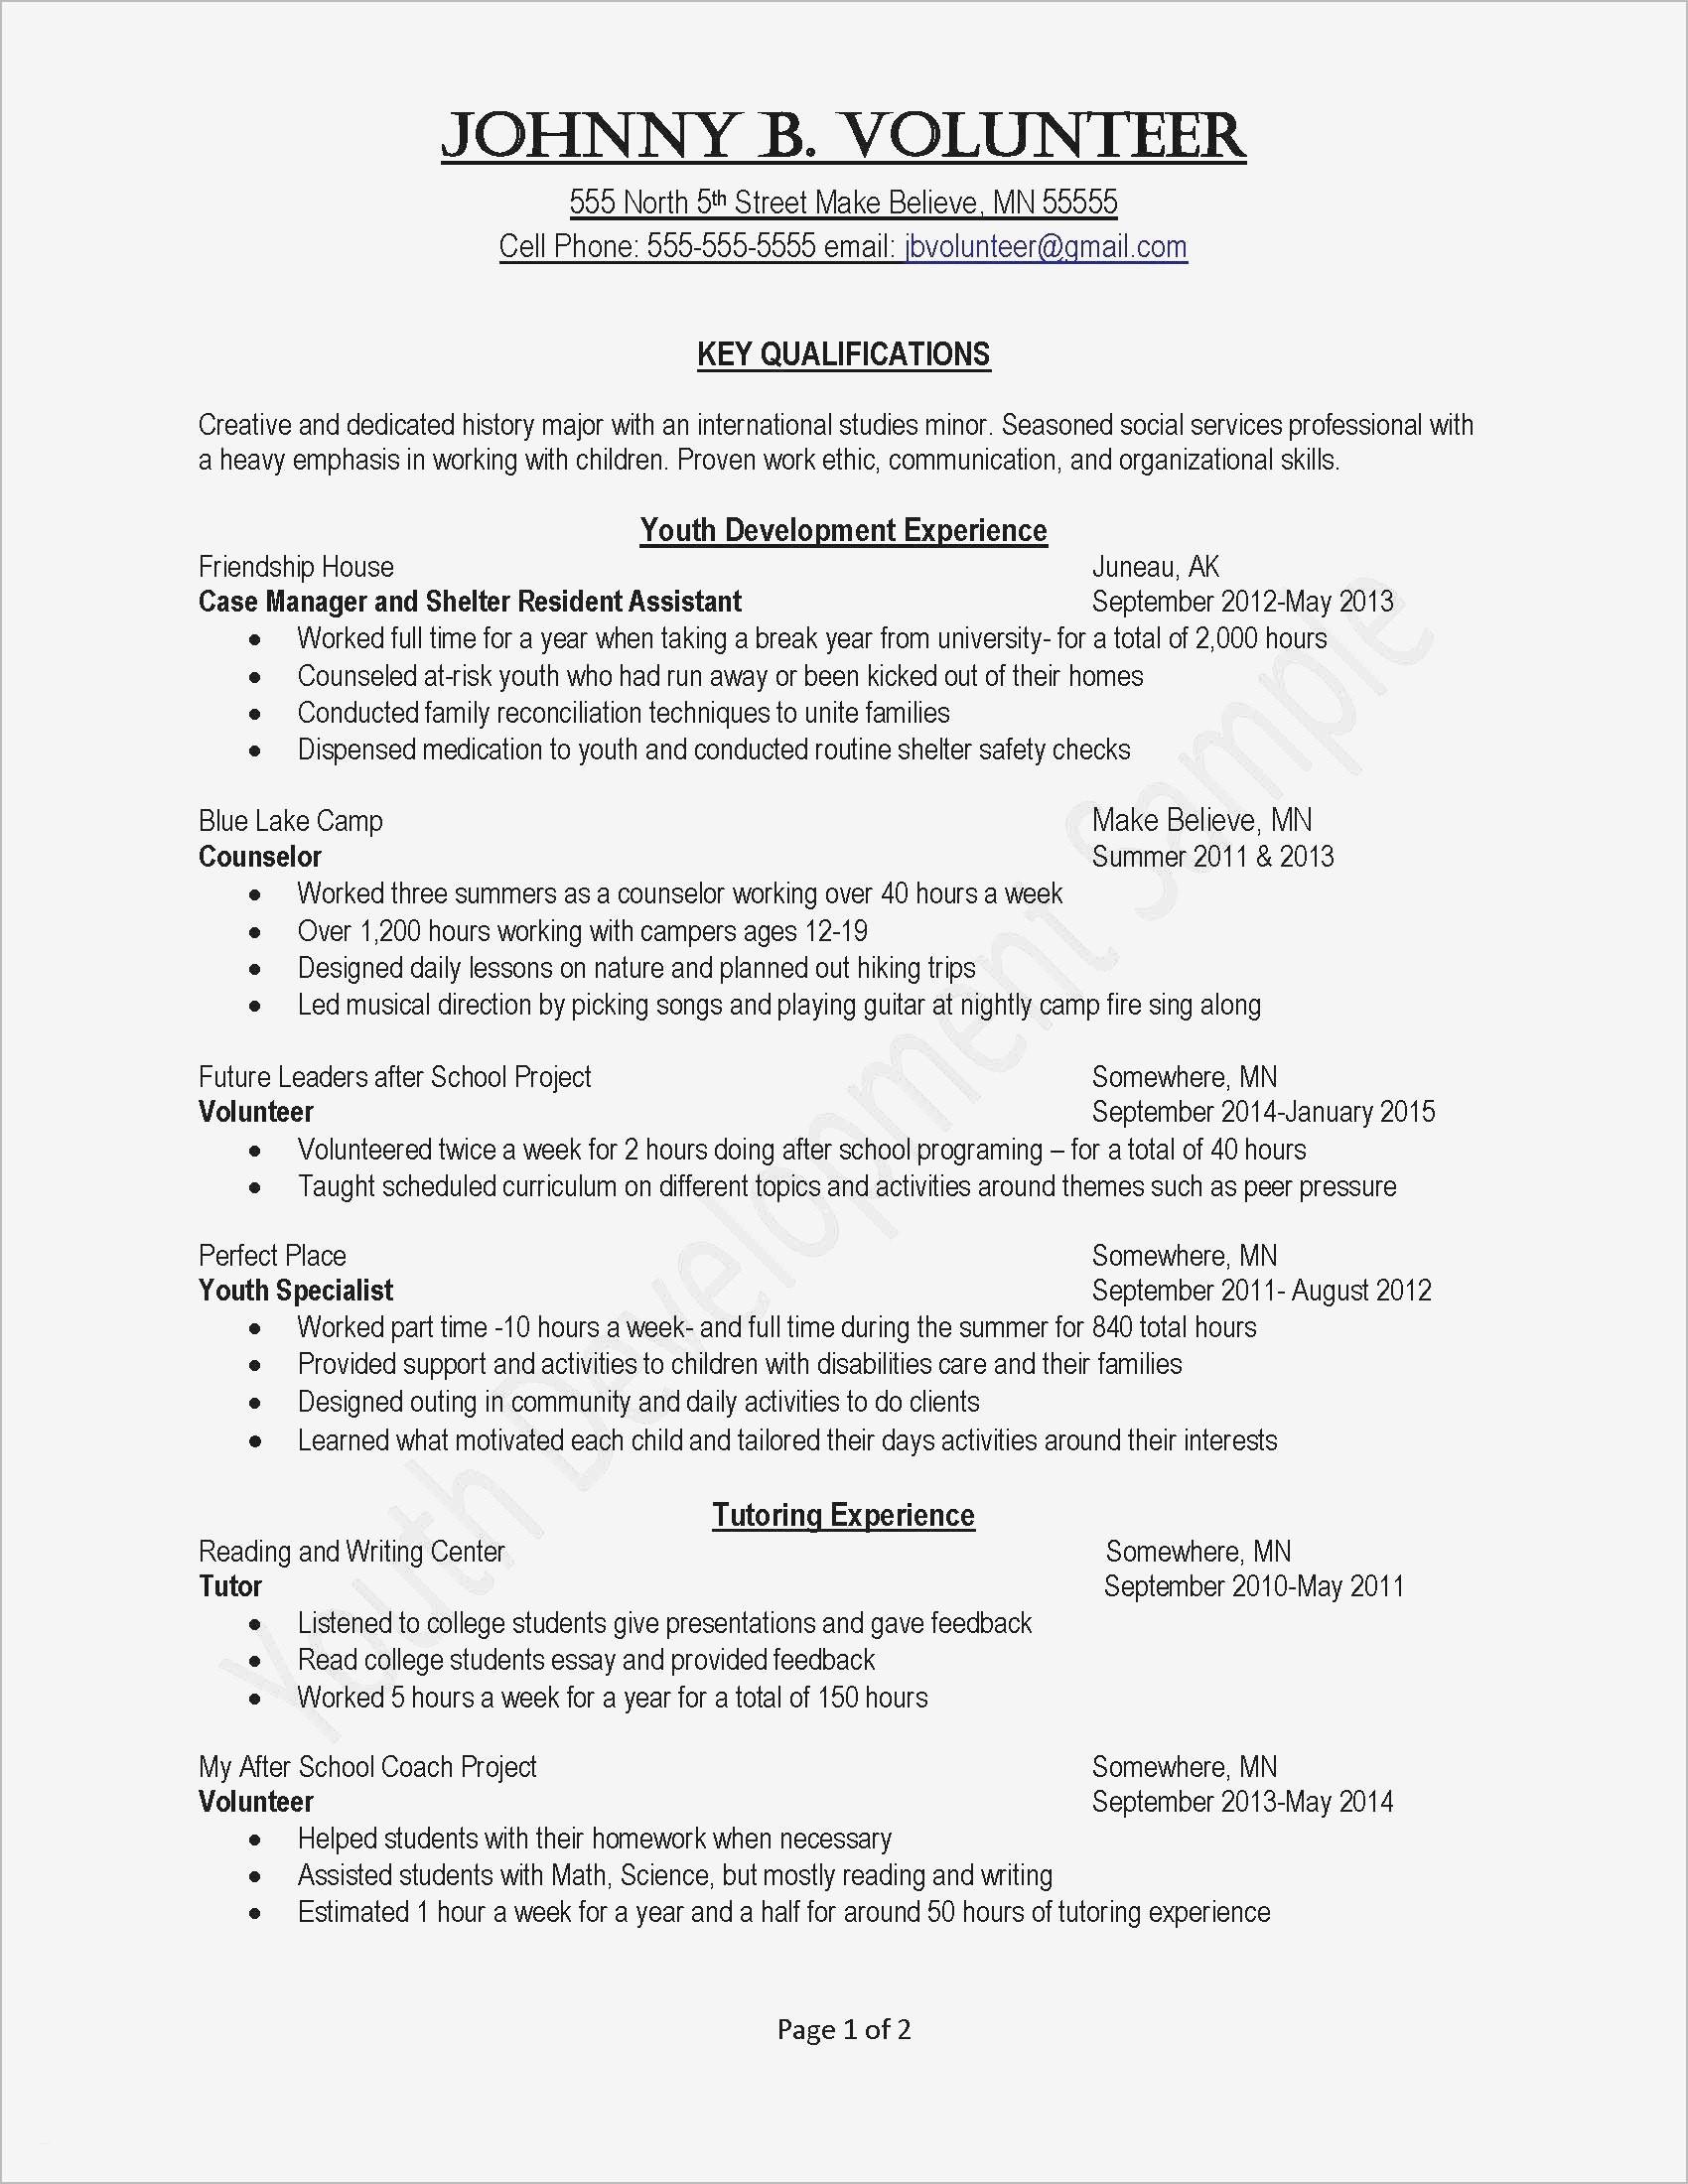 Back to School Letter Template - Work Resume Template Unique Job Fer Letter Template Us Copy Od